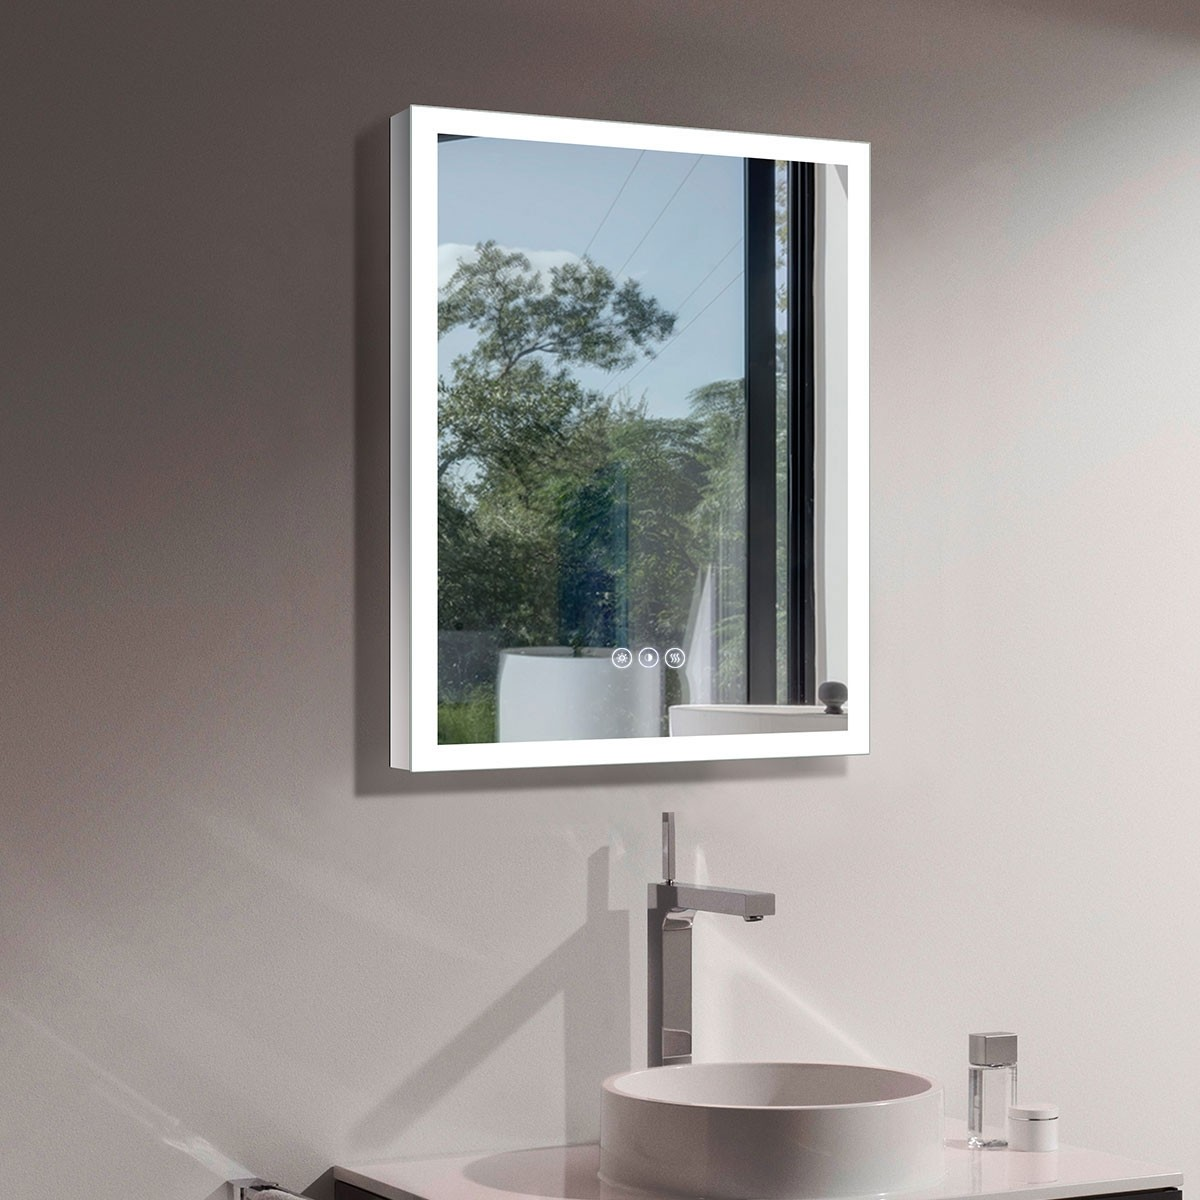 DECORAPORT 24 x 32 Inch LED Bathroom Mirror with Touch Button, Anti Fog, Dimmable, Cold & Warm Light, Vertical & Horizontal Mount (D123-2432B)